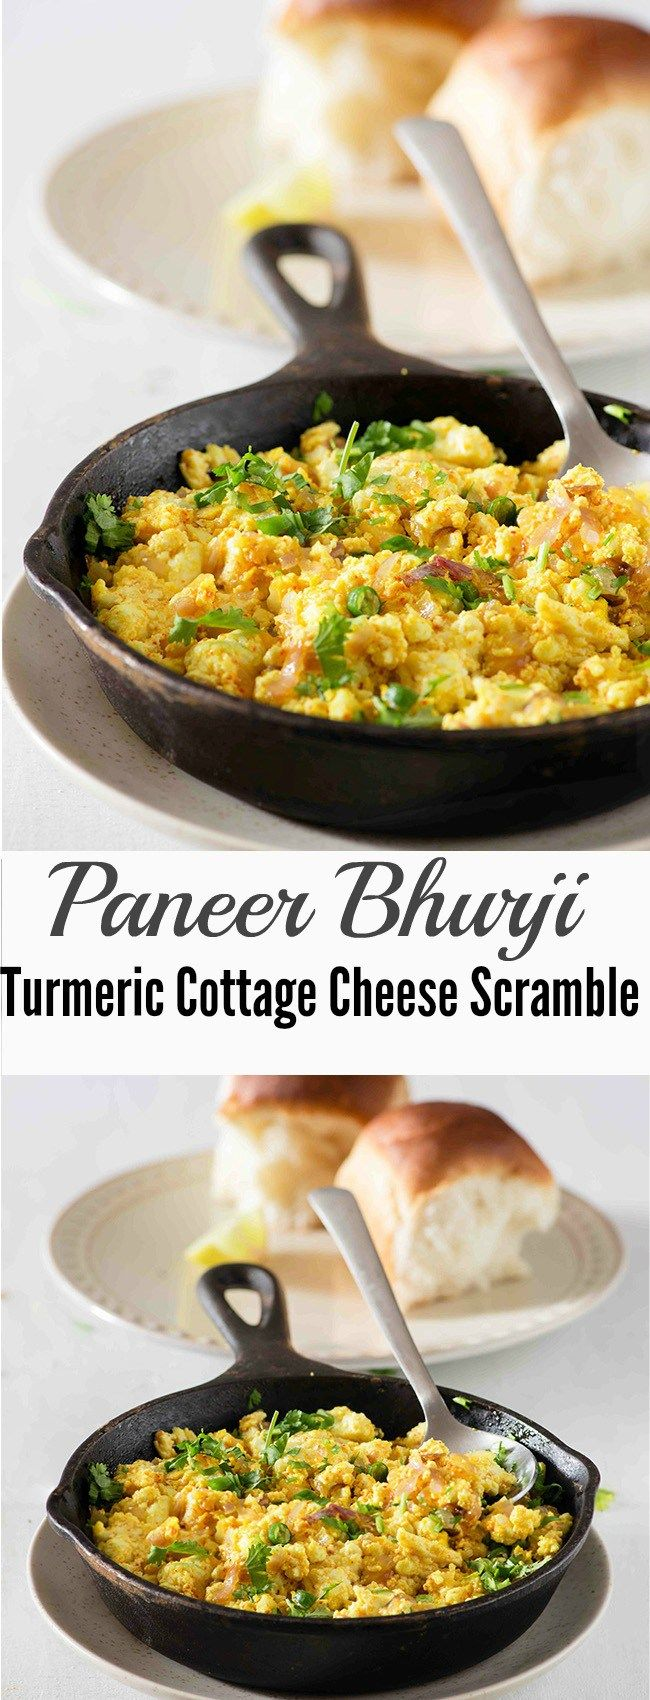 Paneer bhurji is crumbled paneer or scrambled cottage cheese sauteed with onion and simple spices and served with Chapati, paratha or vegetable paratha makes for a delicious and easy meal. Paneer bhurji is a popular paneer dish from North India that is served for breakfast. It is quick and easy paneer dish